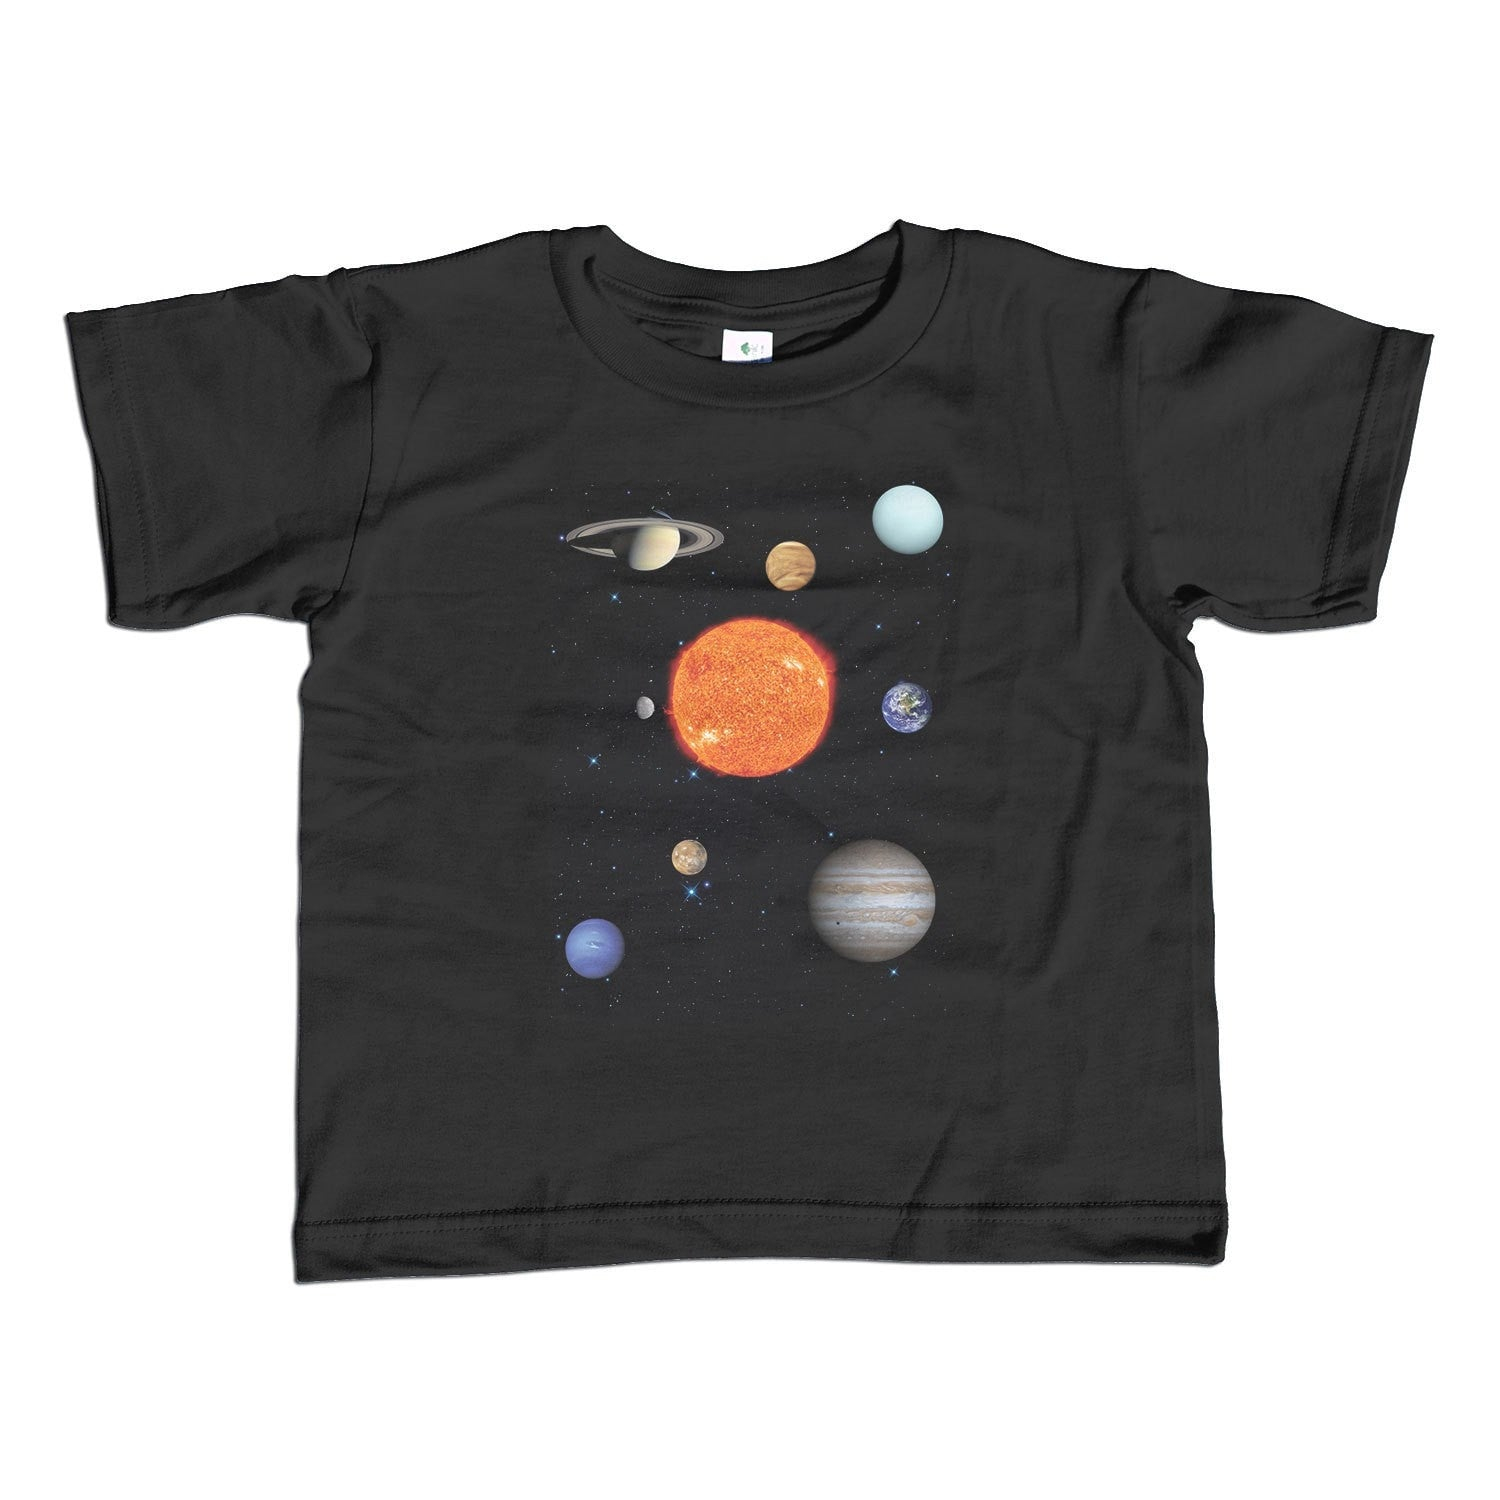 Girl's Solar System T-Shirt - Unisex Fit Astronomy